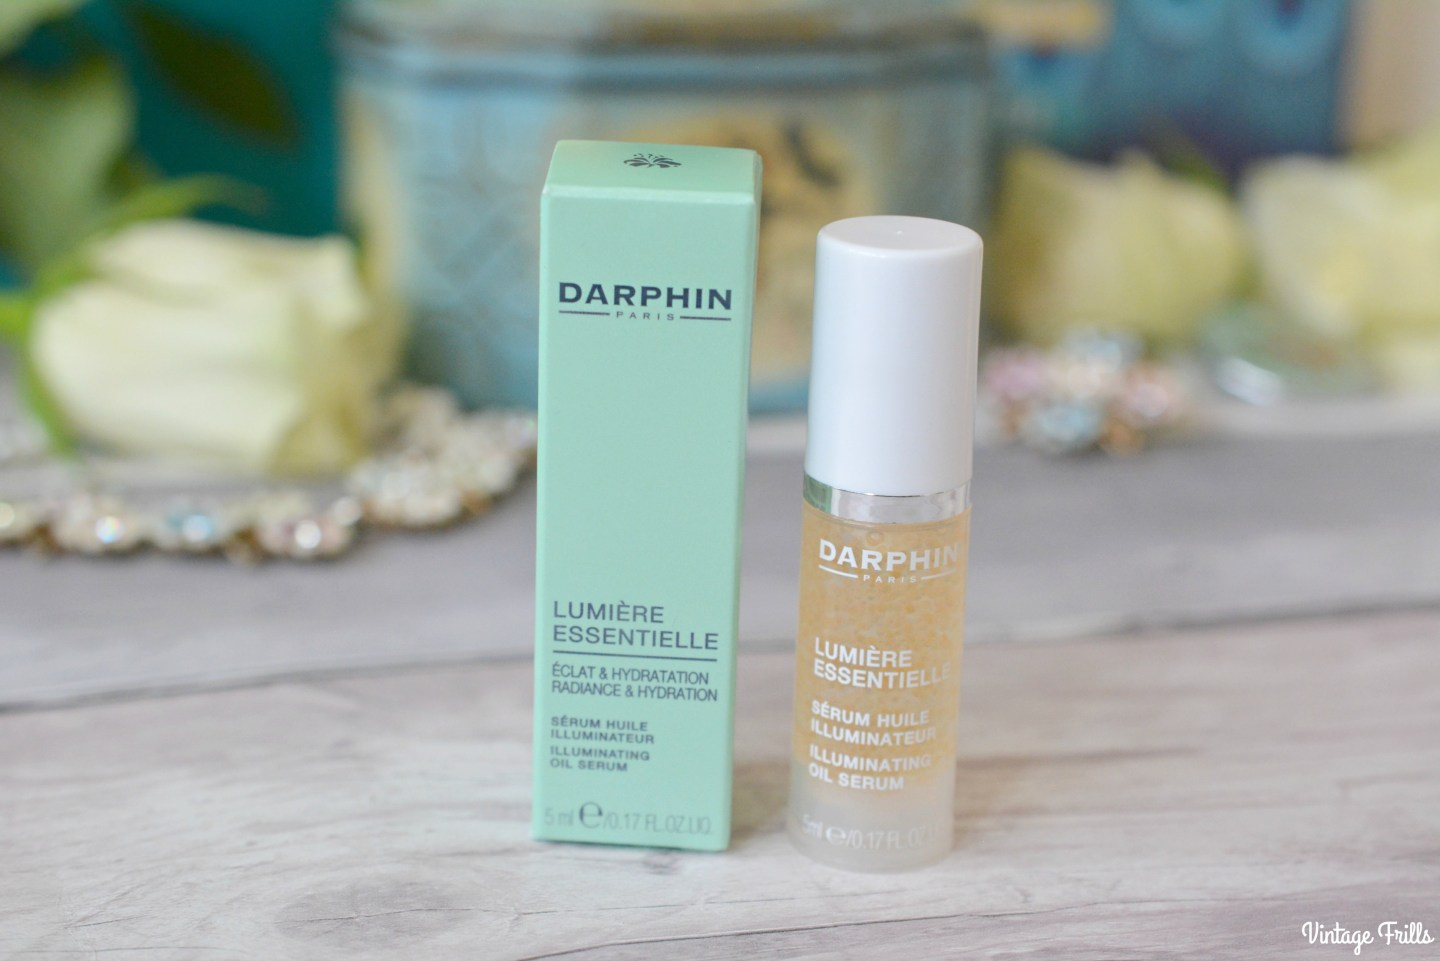 birchbox-november-2016-darphin-lumiere-essentielle